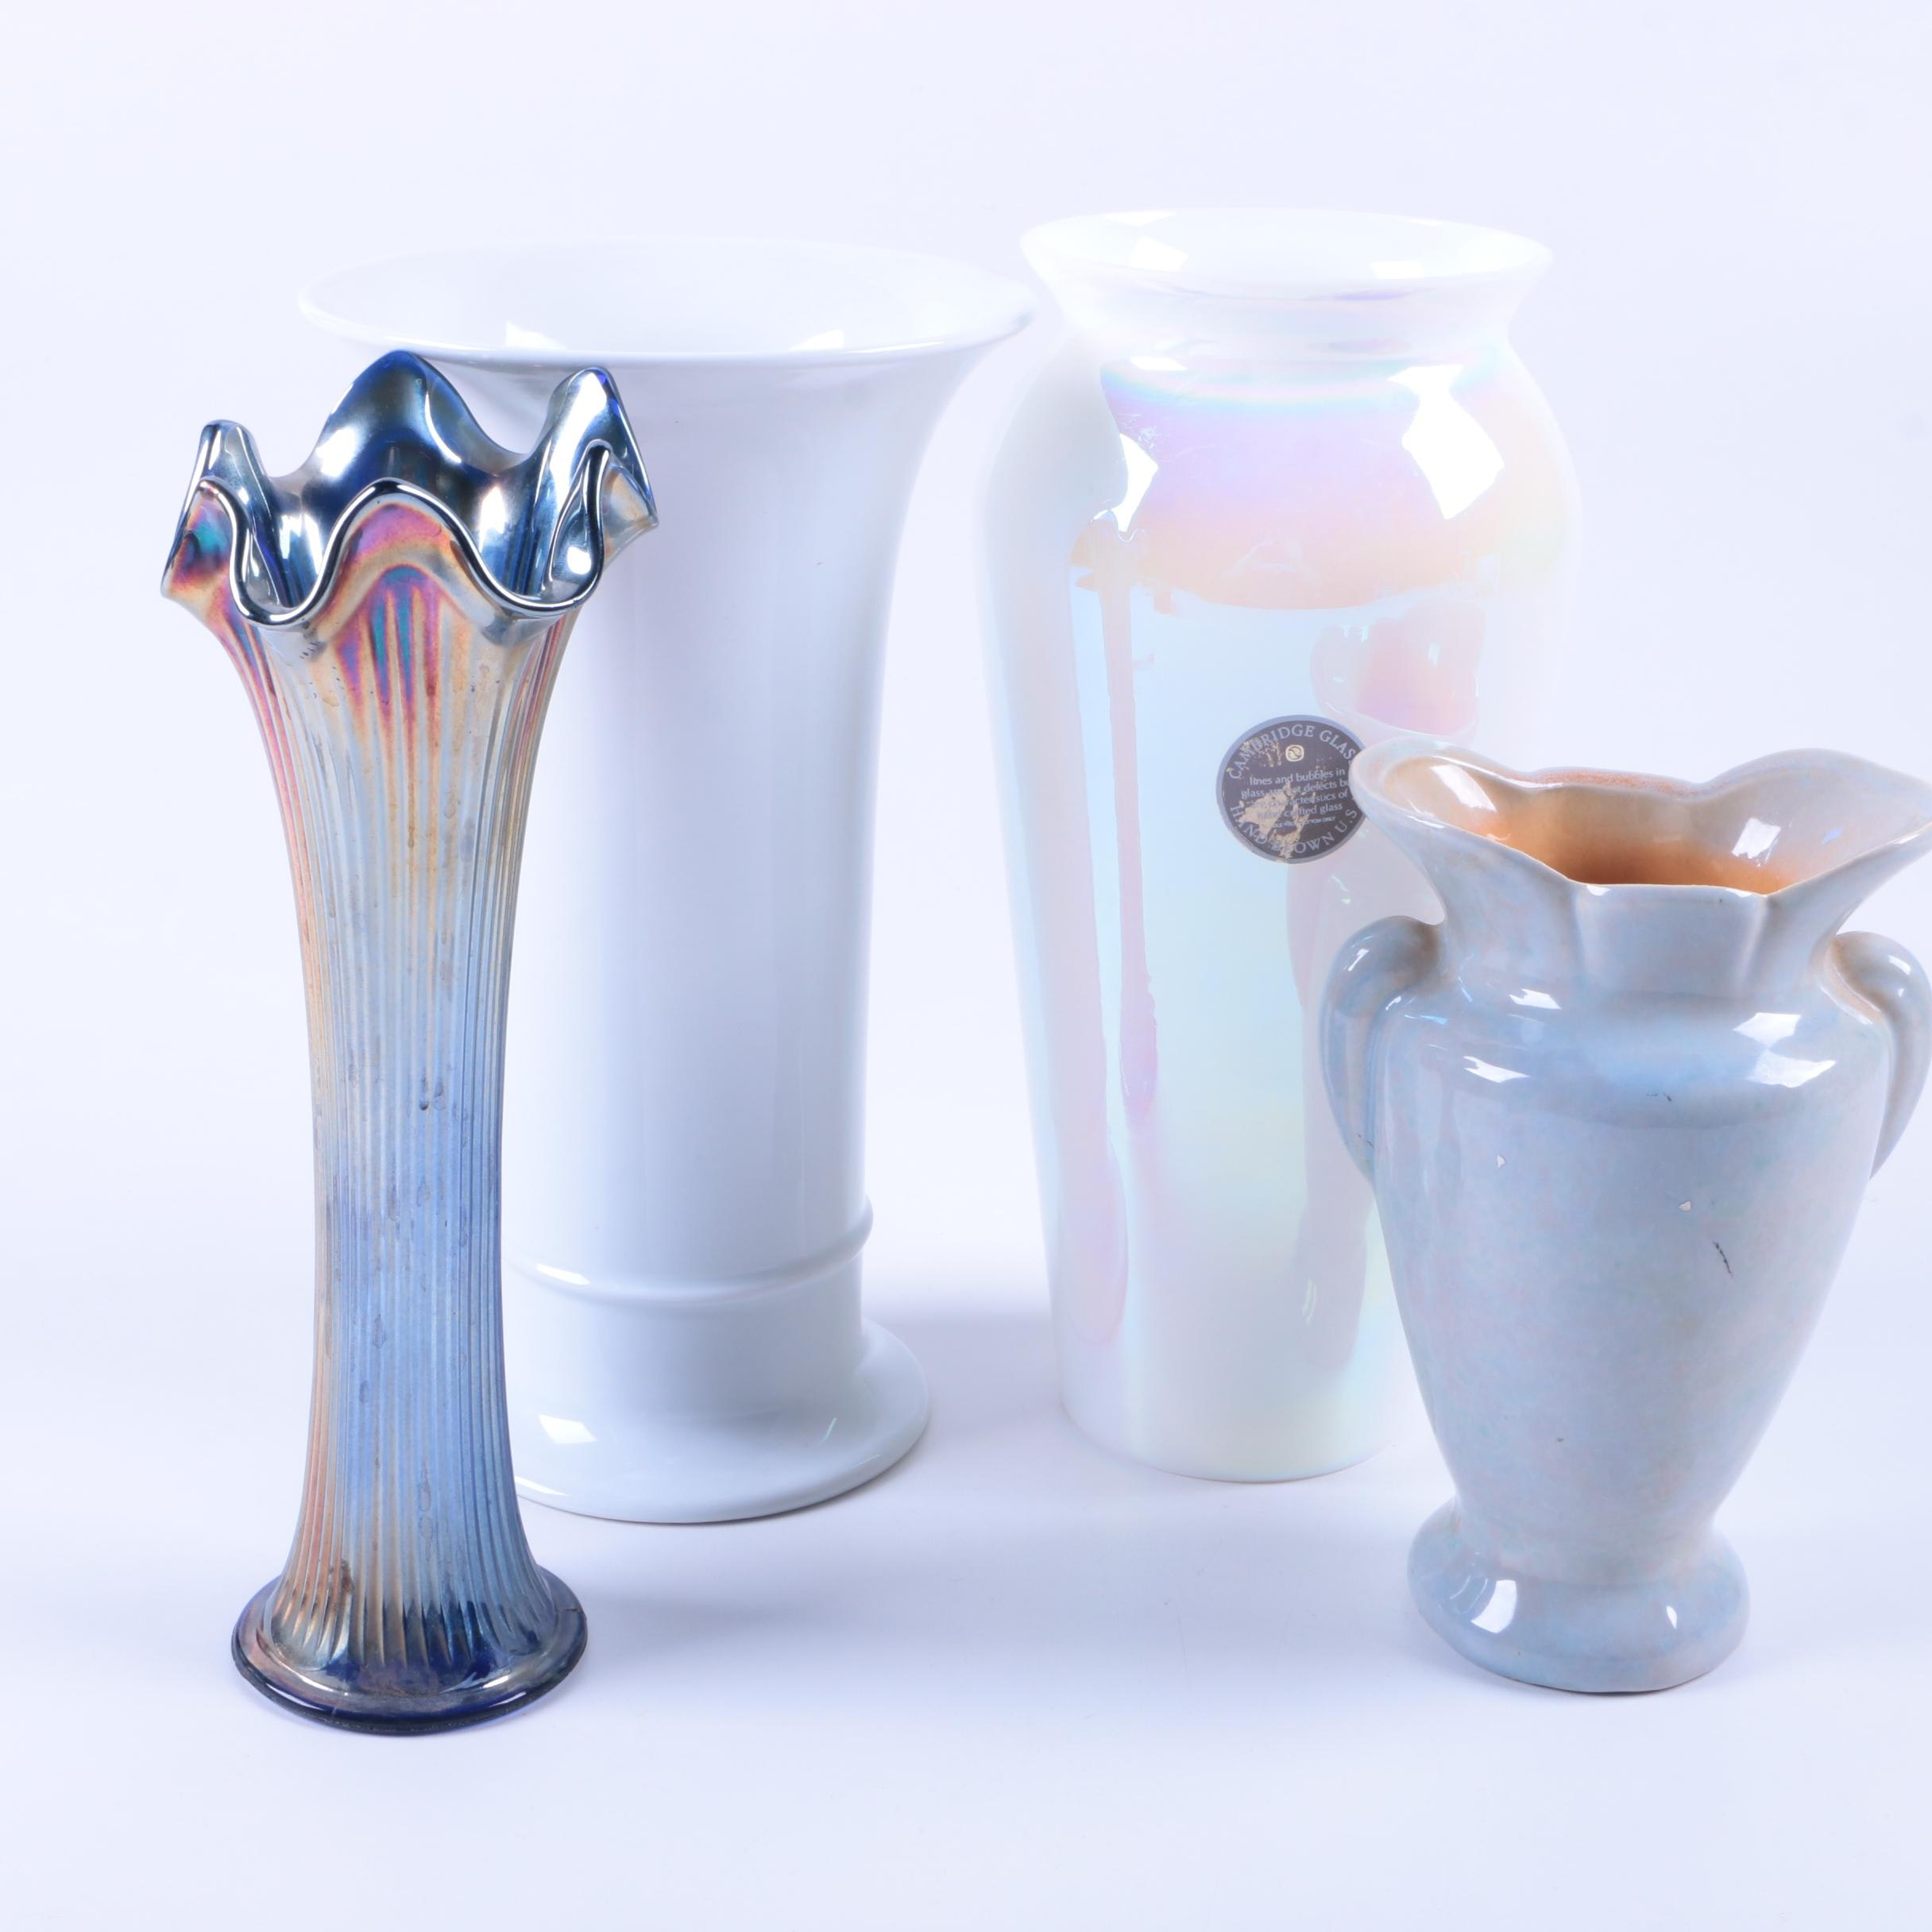 Vases Featuring Carnival and Cambridge Glass